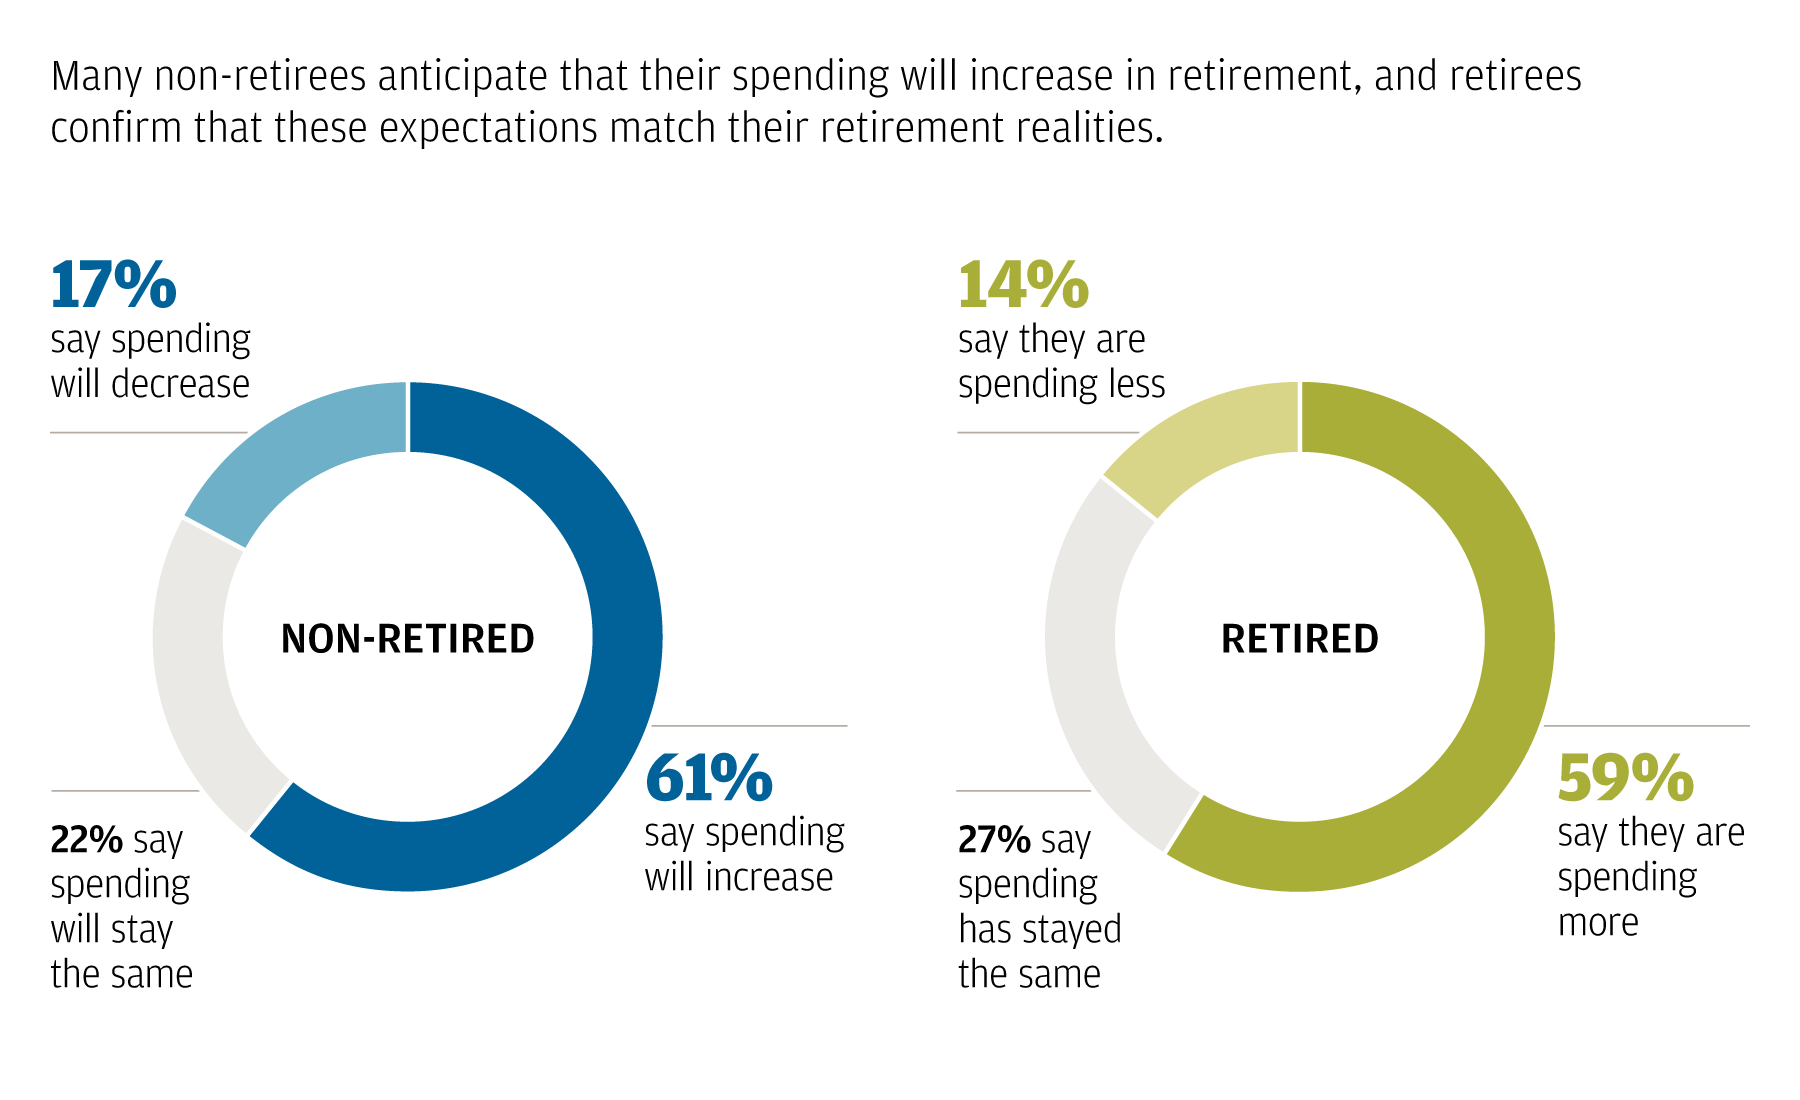 The graphic shows two pie charts, one for retirees and one for non-retirees. It depicts the percentage of survey respondents in each group who anticipate/have experienced spending increasing, decreasing, or staying the same in retirement. It shows that the majority of non-retirees anticipate that their spending will increase in retirement, and the majority of retirees concur that this is the case.